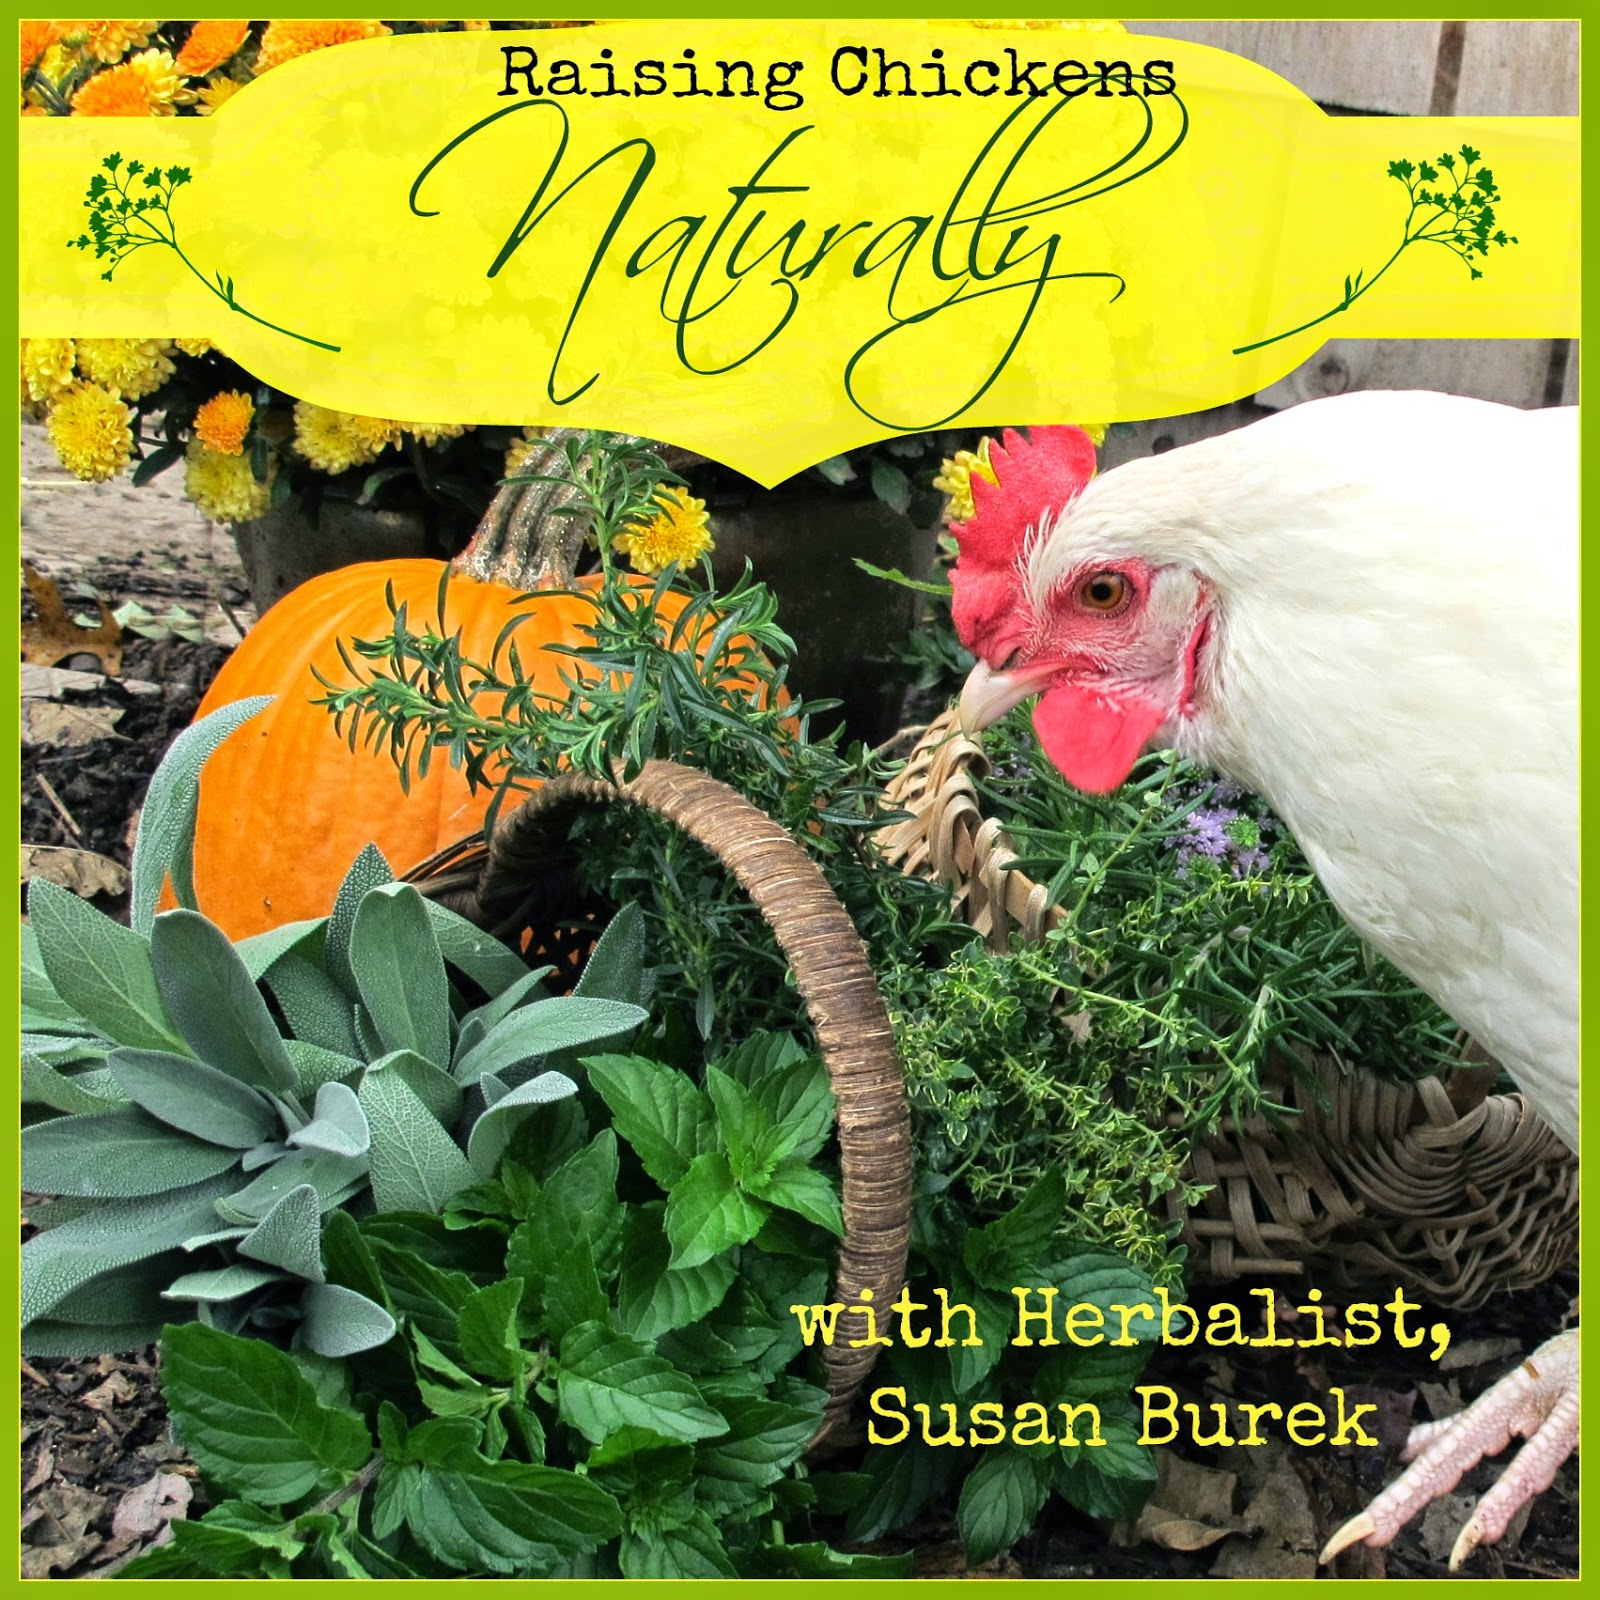 Susan Burek, Herbalist, Pioneer of Raising Chickens Naturally